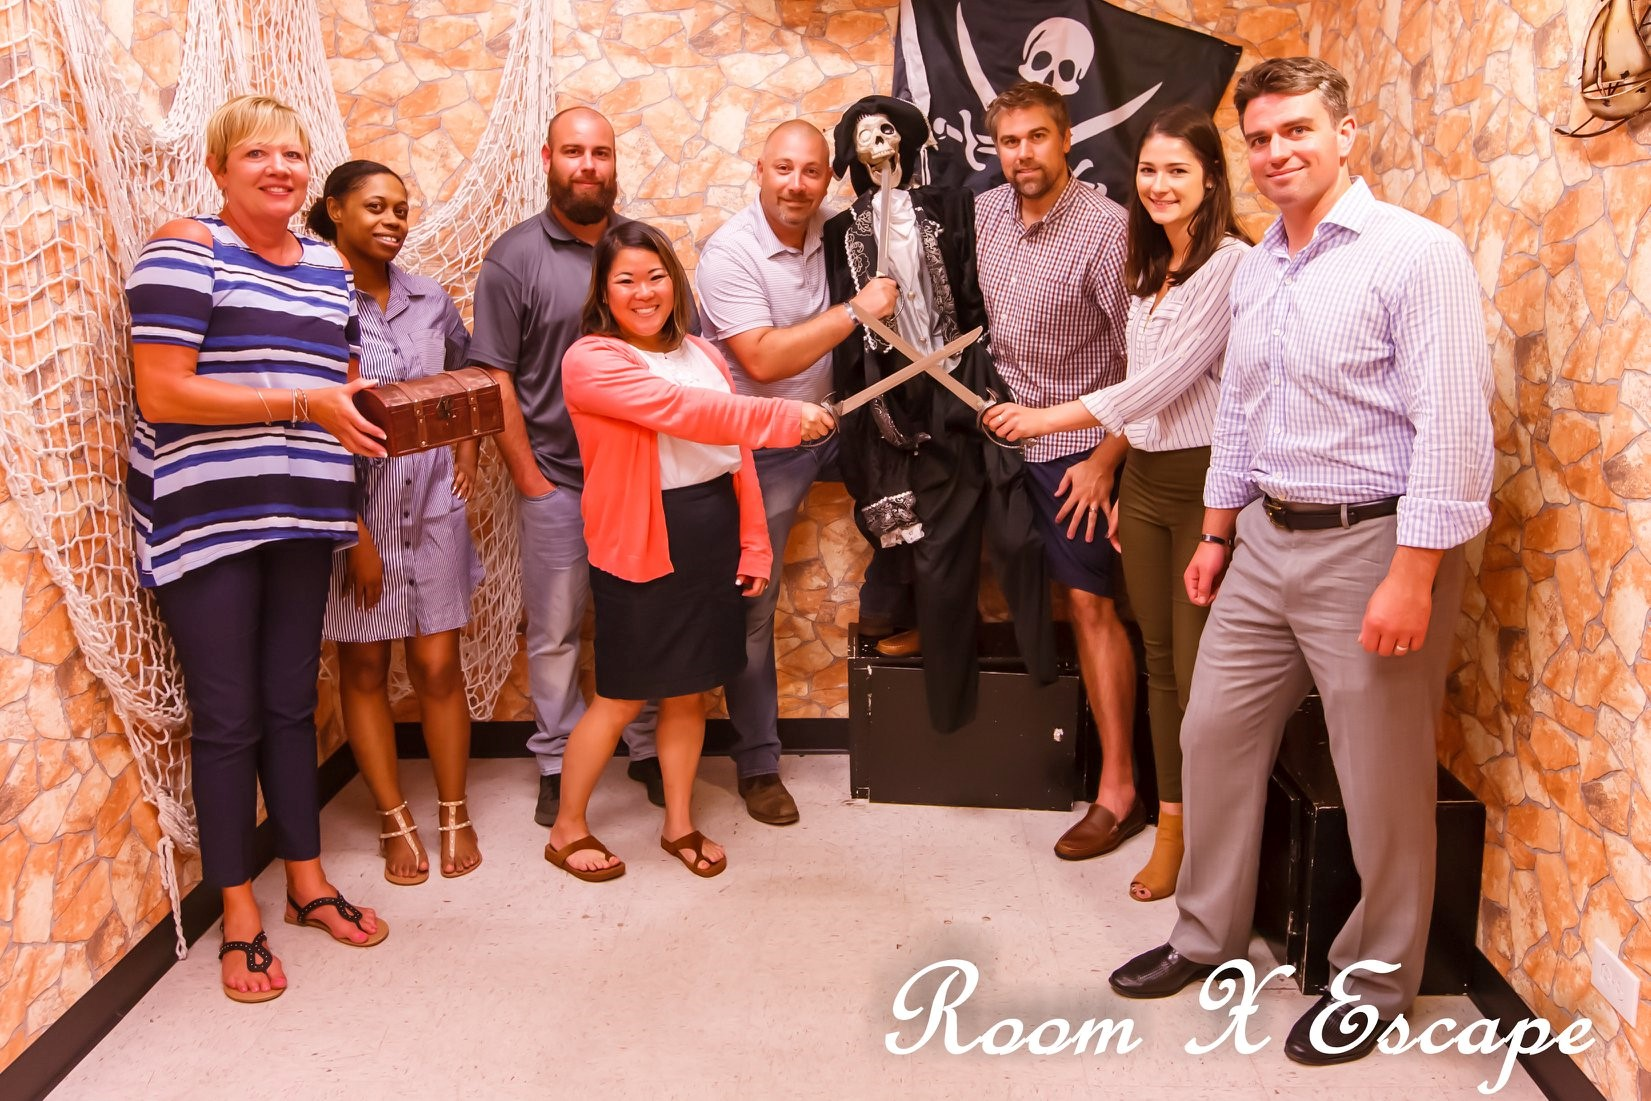 End of Summer Team Building at Room X Escape